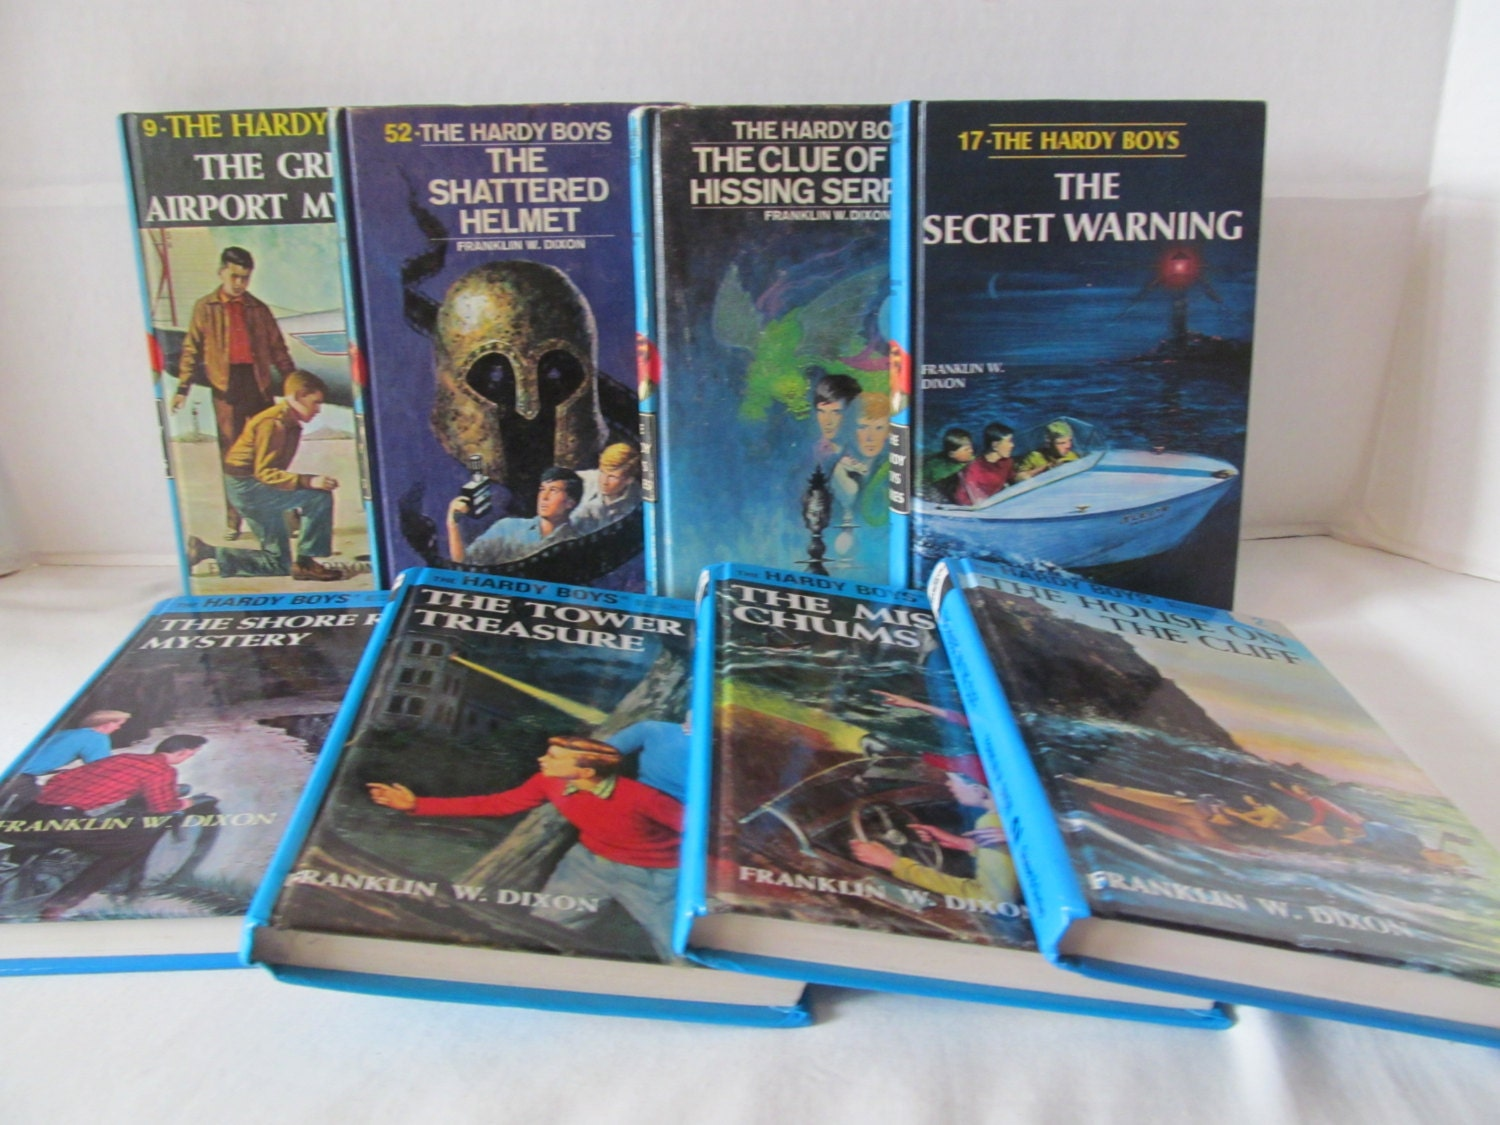 hardy boys mystery books For sale here is the 1971 hardcover book titled the hardy boys-the yellow feather mystery that was written by franklin w dixon this book was published by grosset & dunlap and it is #33 in the hardy boys series.